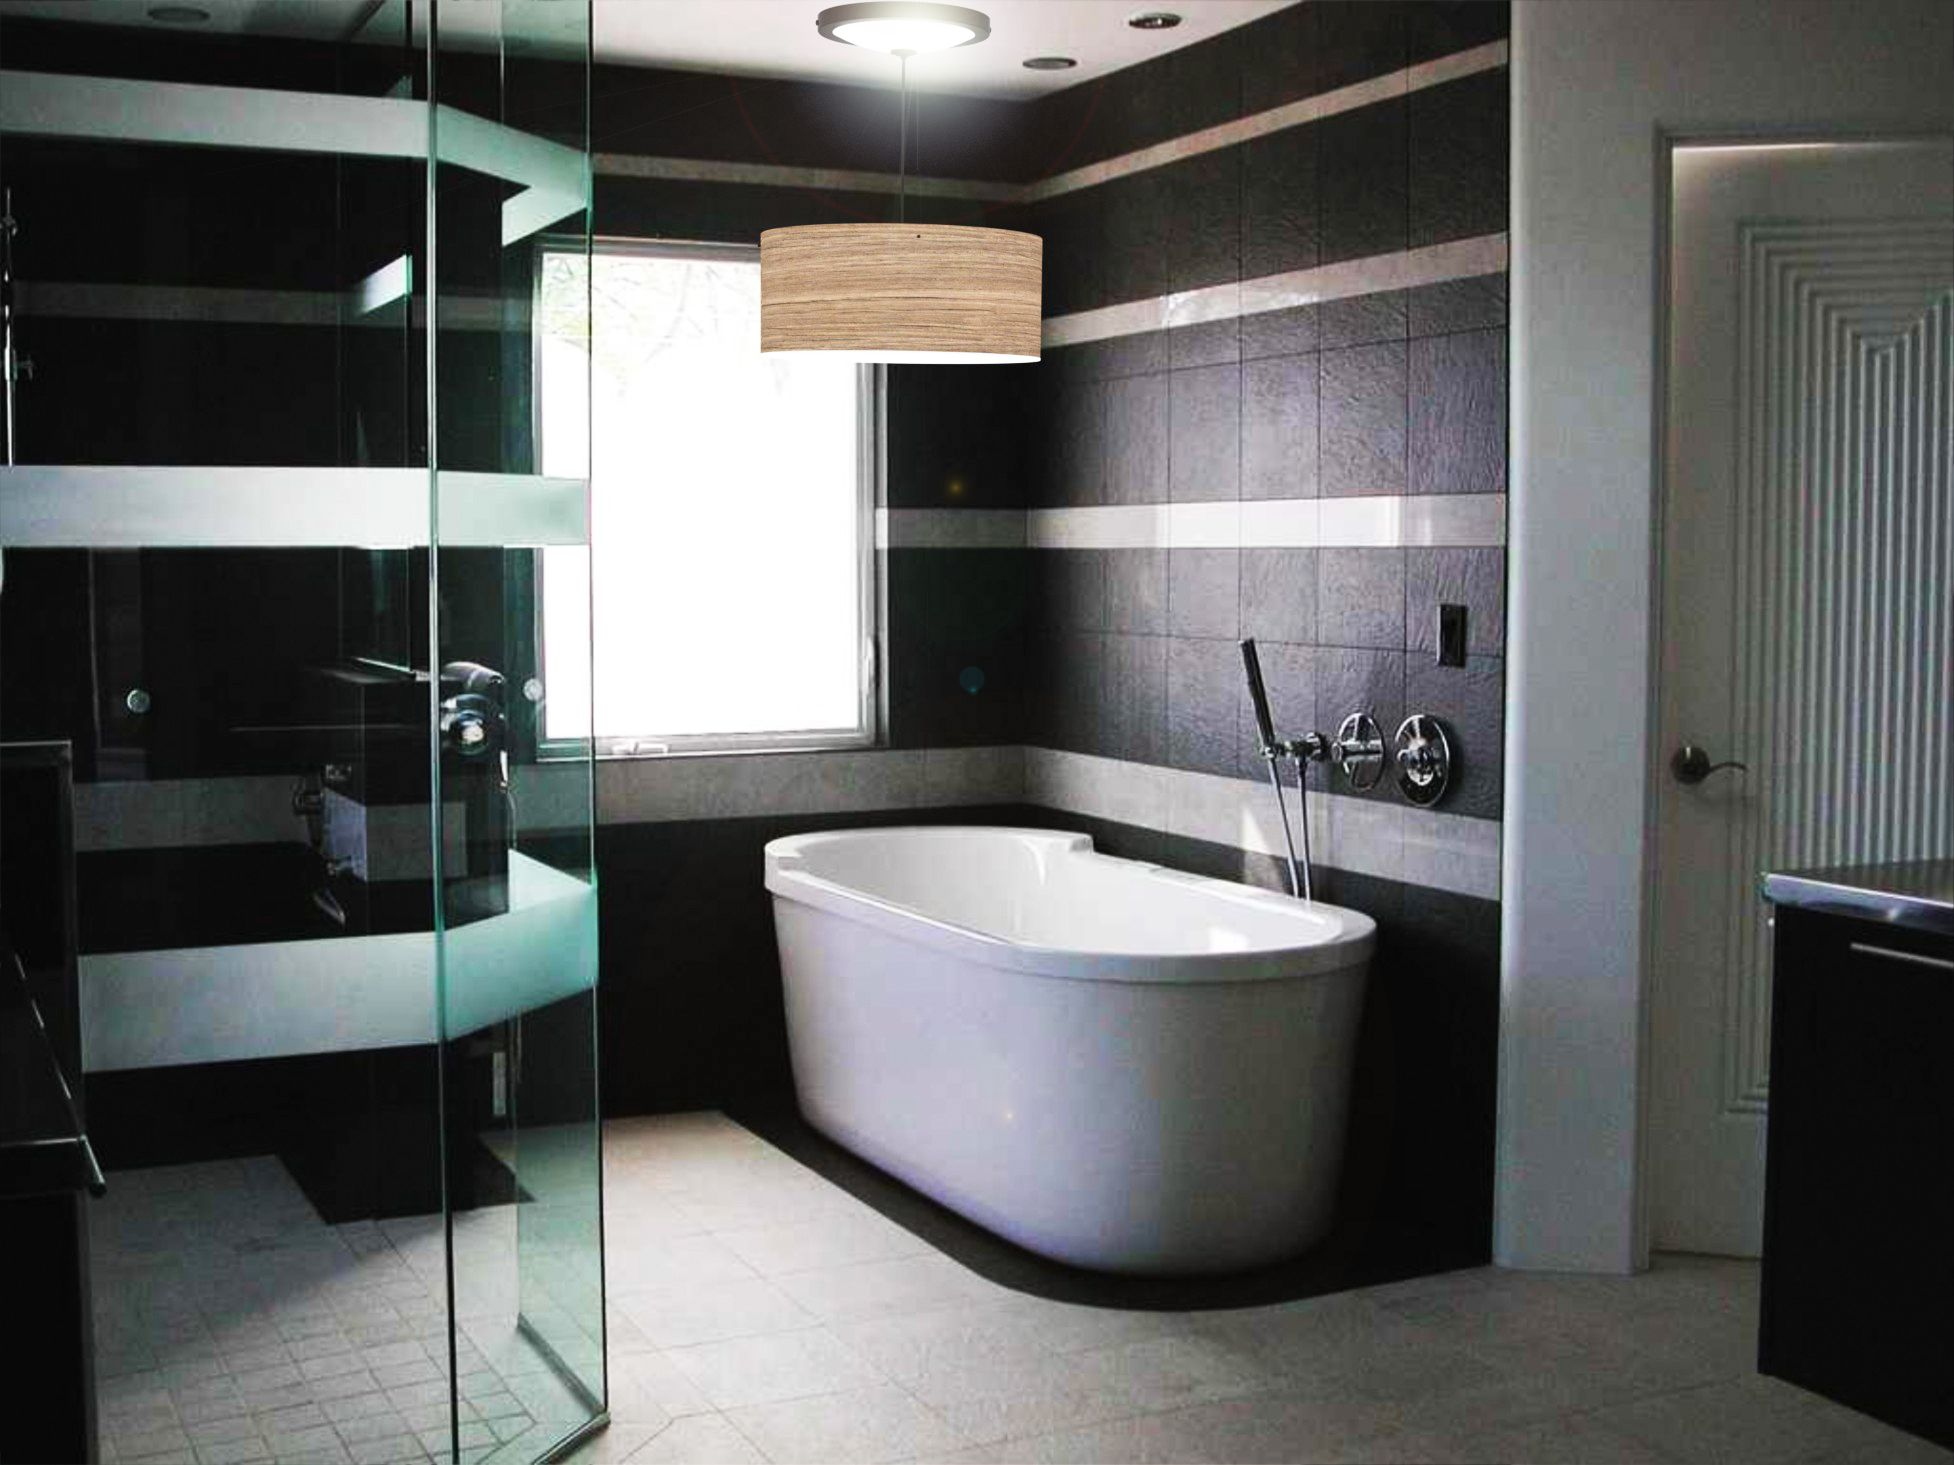 Solar luminance dlf 163 custom daylight light fixtures unique small bathroom tile design bathroom contemporary small bathroom wall and flooring tiles ideas in cool elegant black and white color scheme dailygadgetfo Choice Image